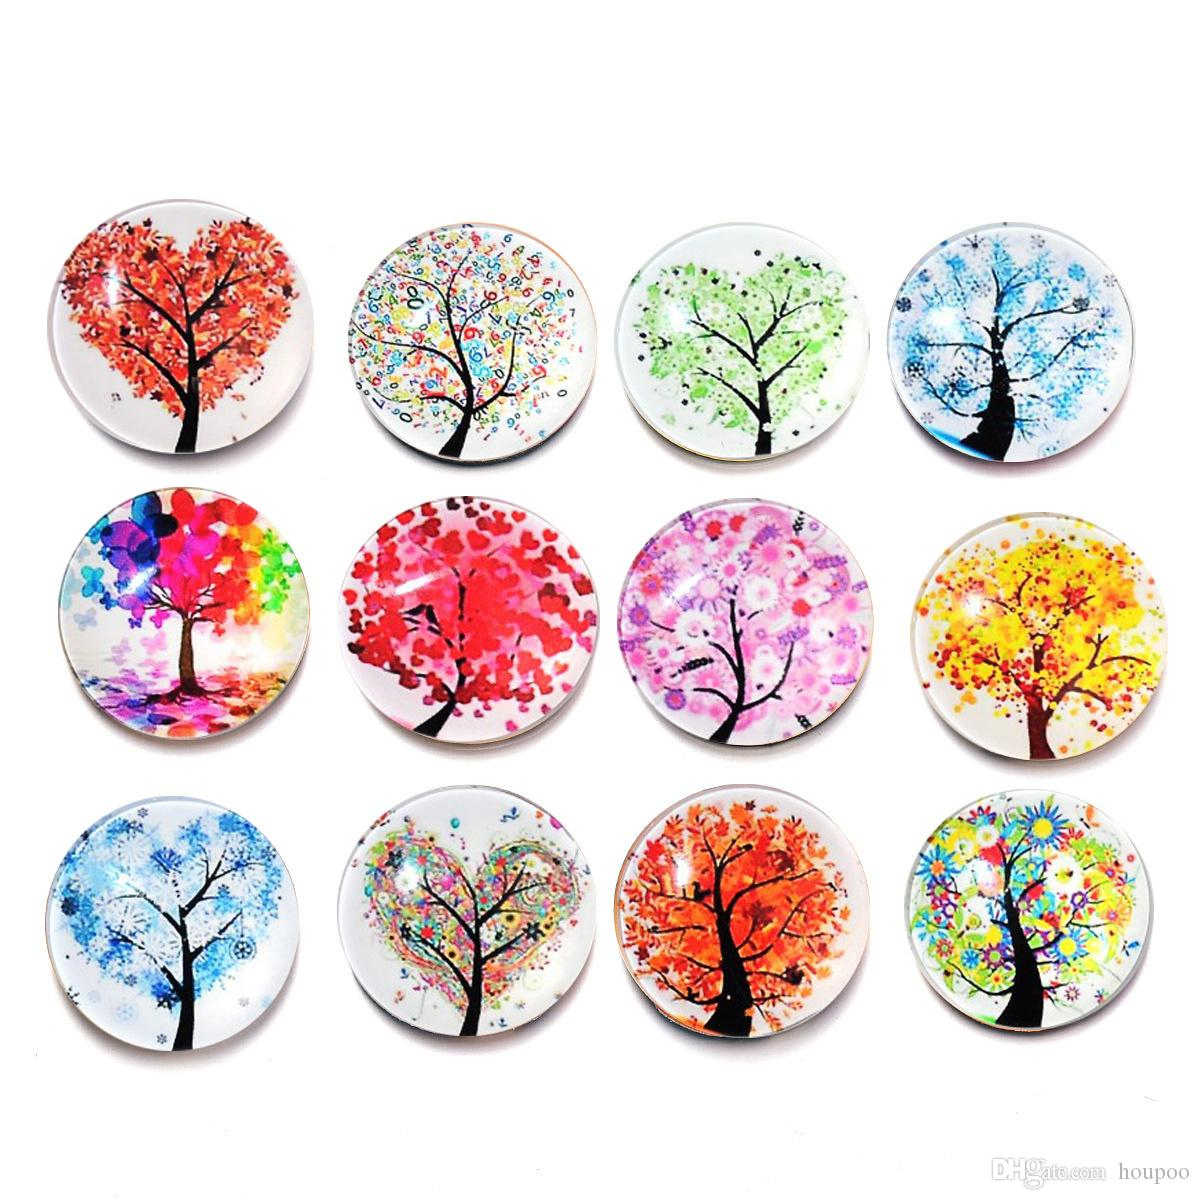 25mm fridge magnet tree of life stickers home decor kitchen 25mm fridge magnet tree of life stickers home decor kitchen accessories party supplies wedding decorations christmas gifts custom magnets uk custom magnets junglespirit Gallery